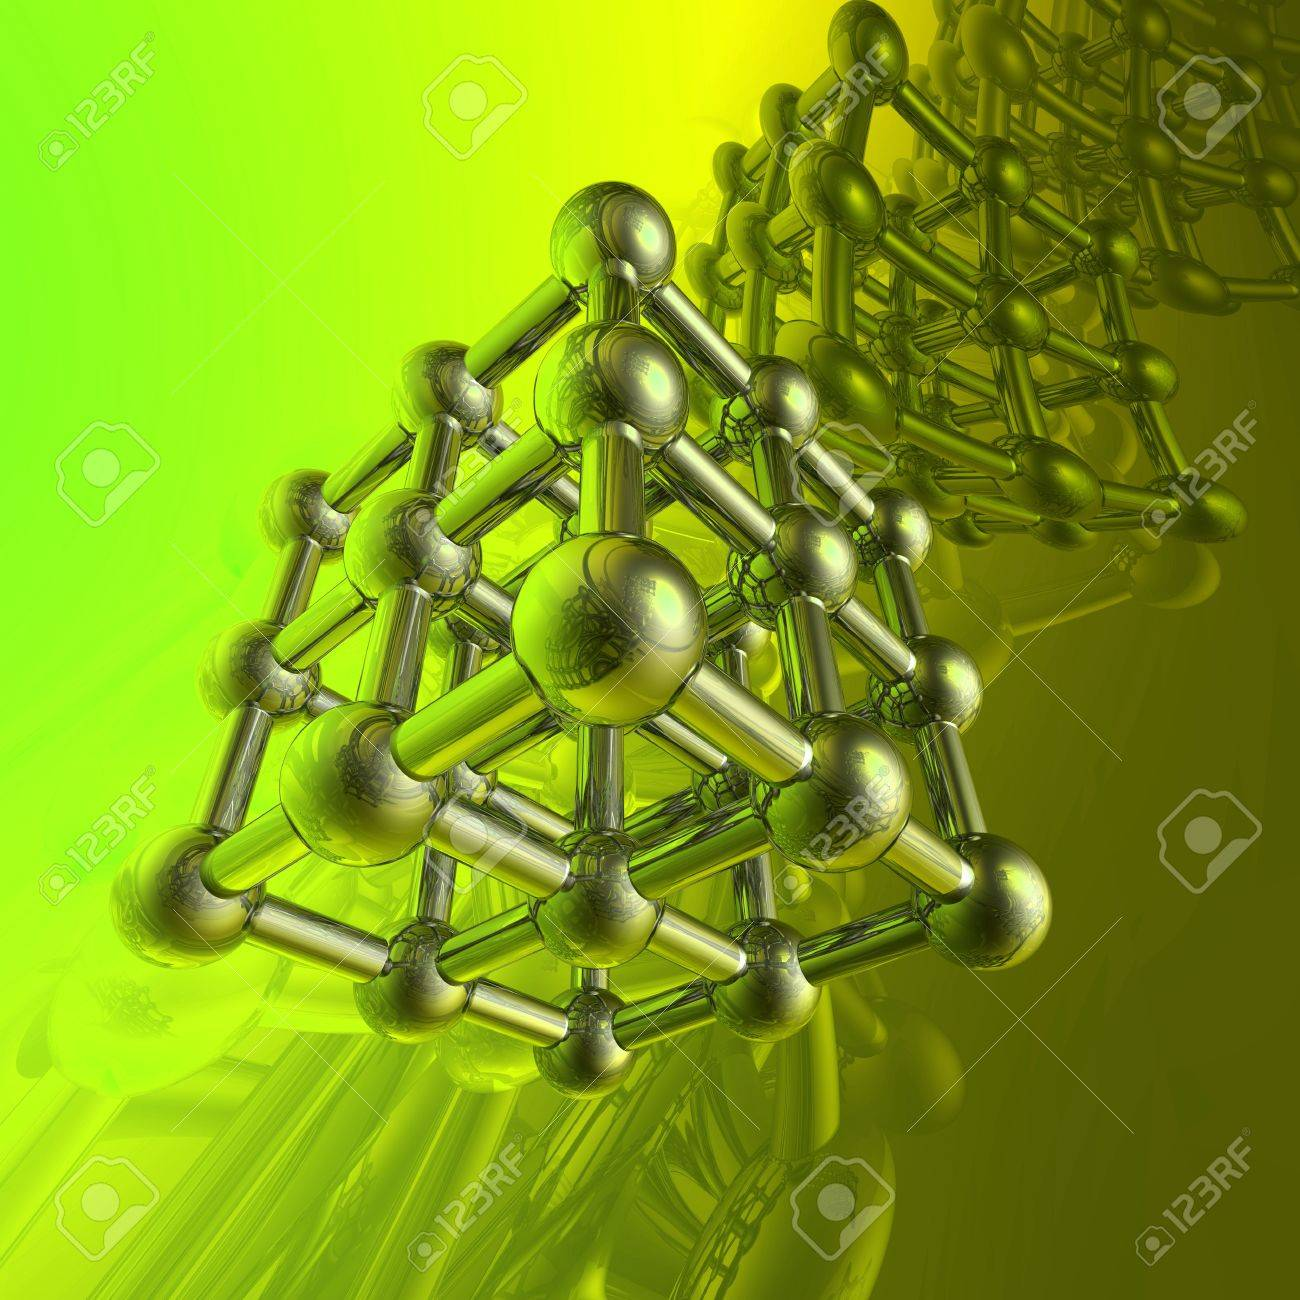 Render of molecule Stock Photo - 6895286